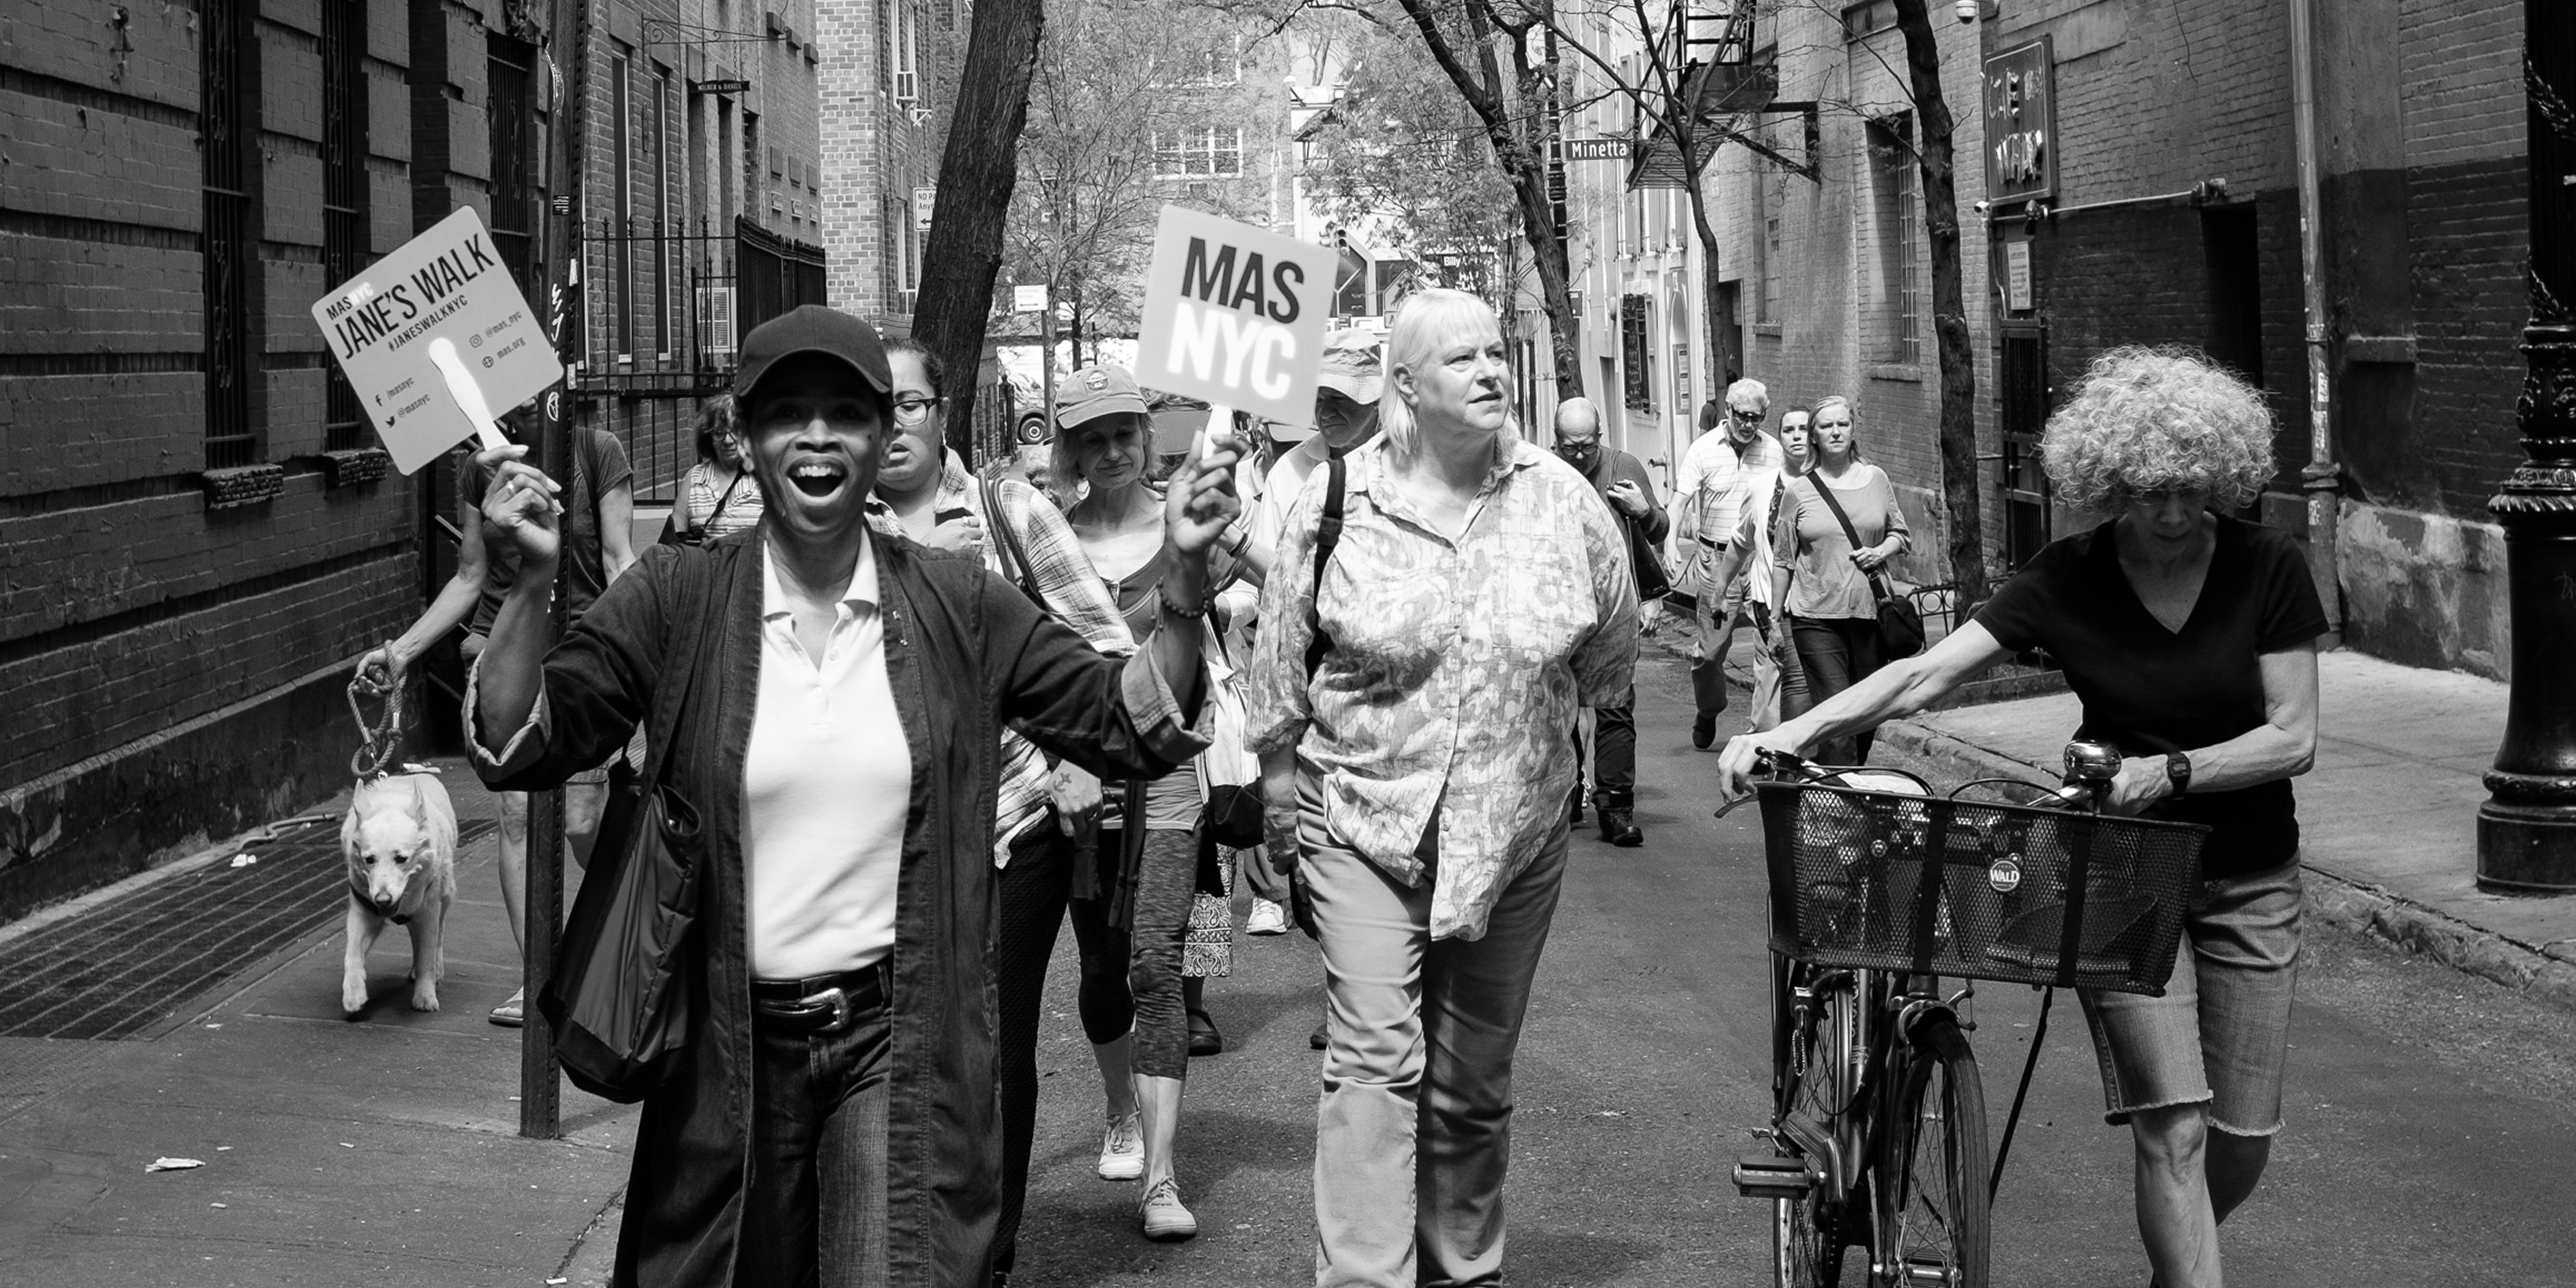 a leader and walkers on a Jane's Walk in Greenwich Village